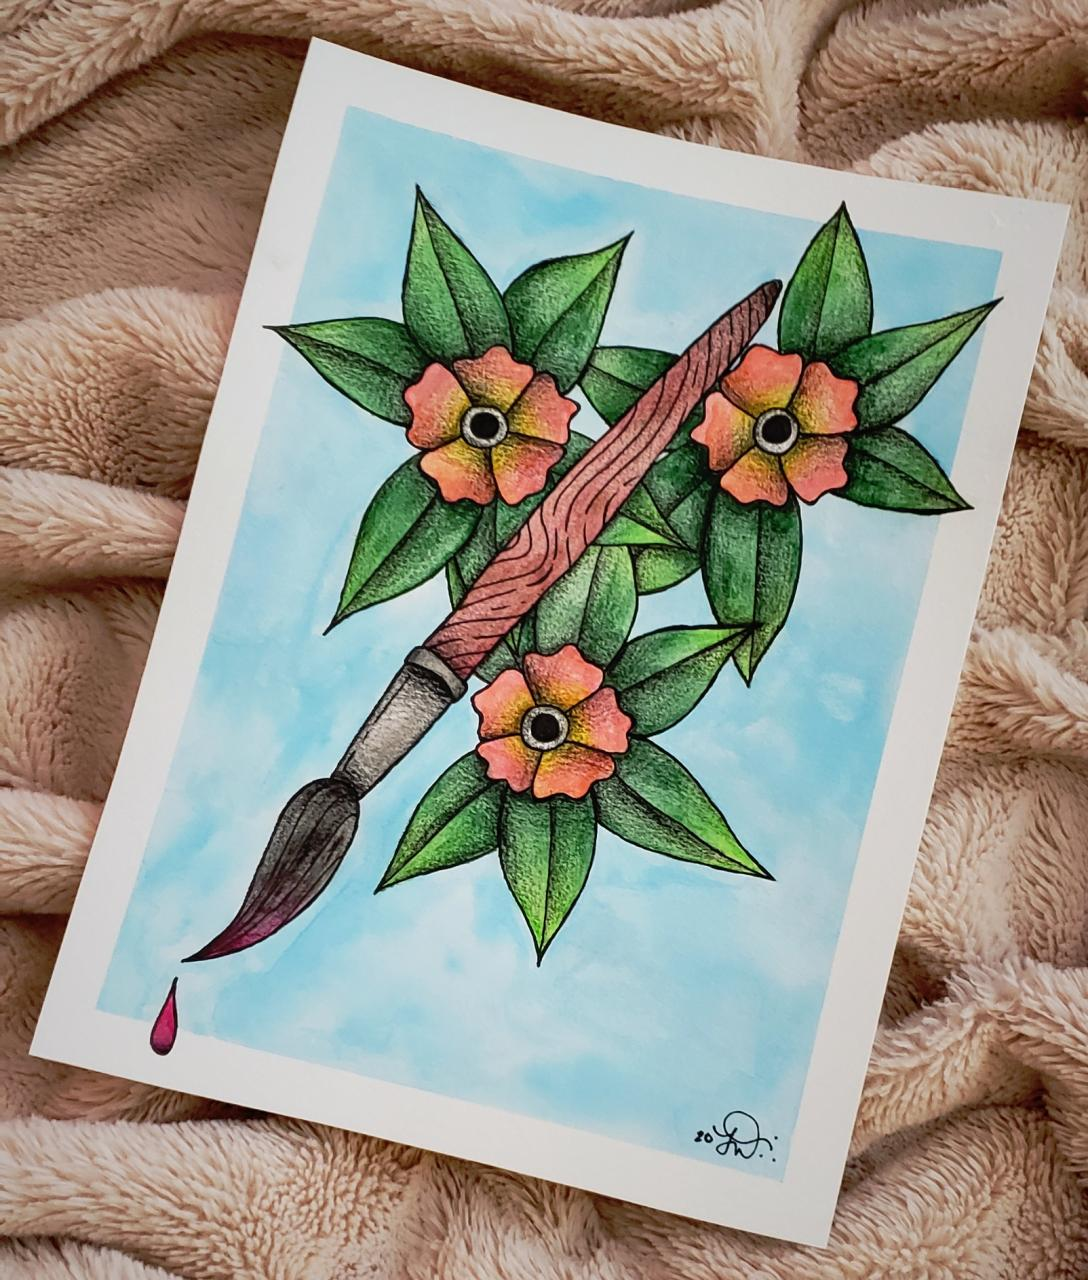 Kinda wanna get this on the back of my forearm as somewhat of a wraparound. Love it!